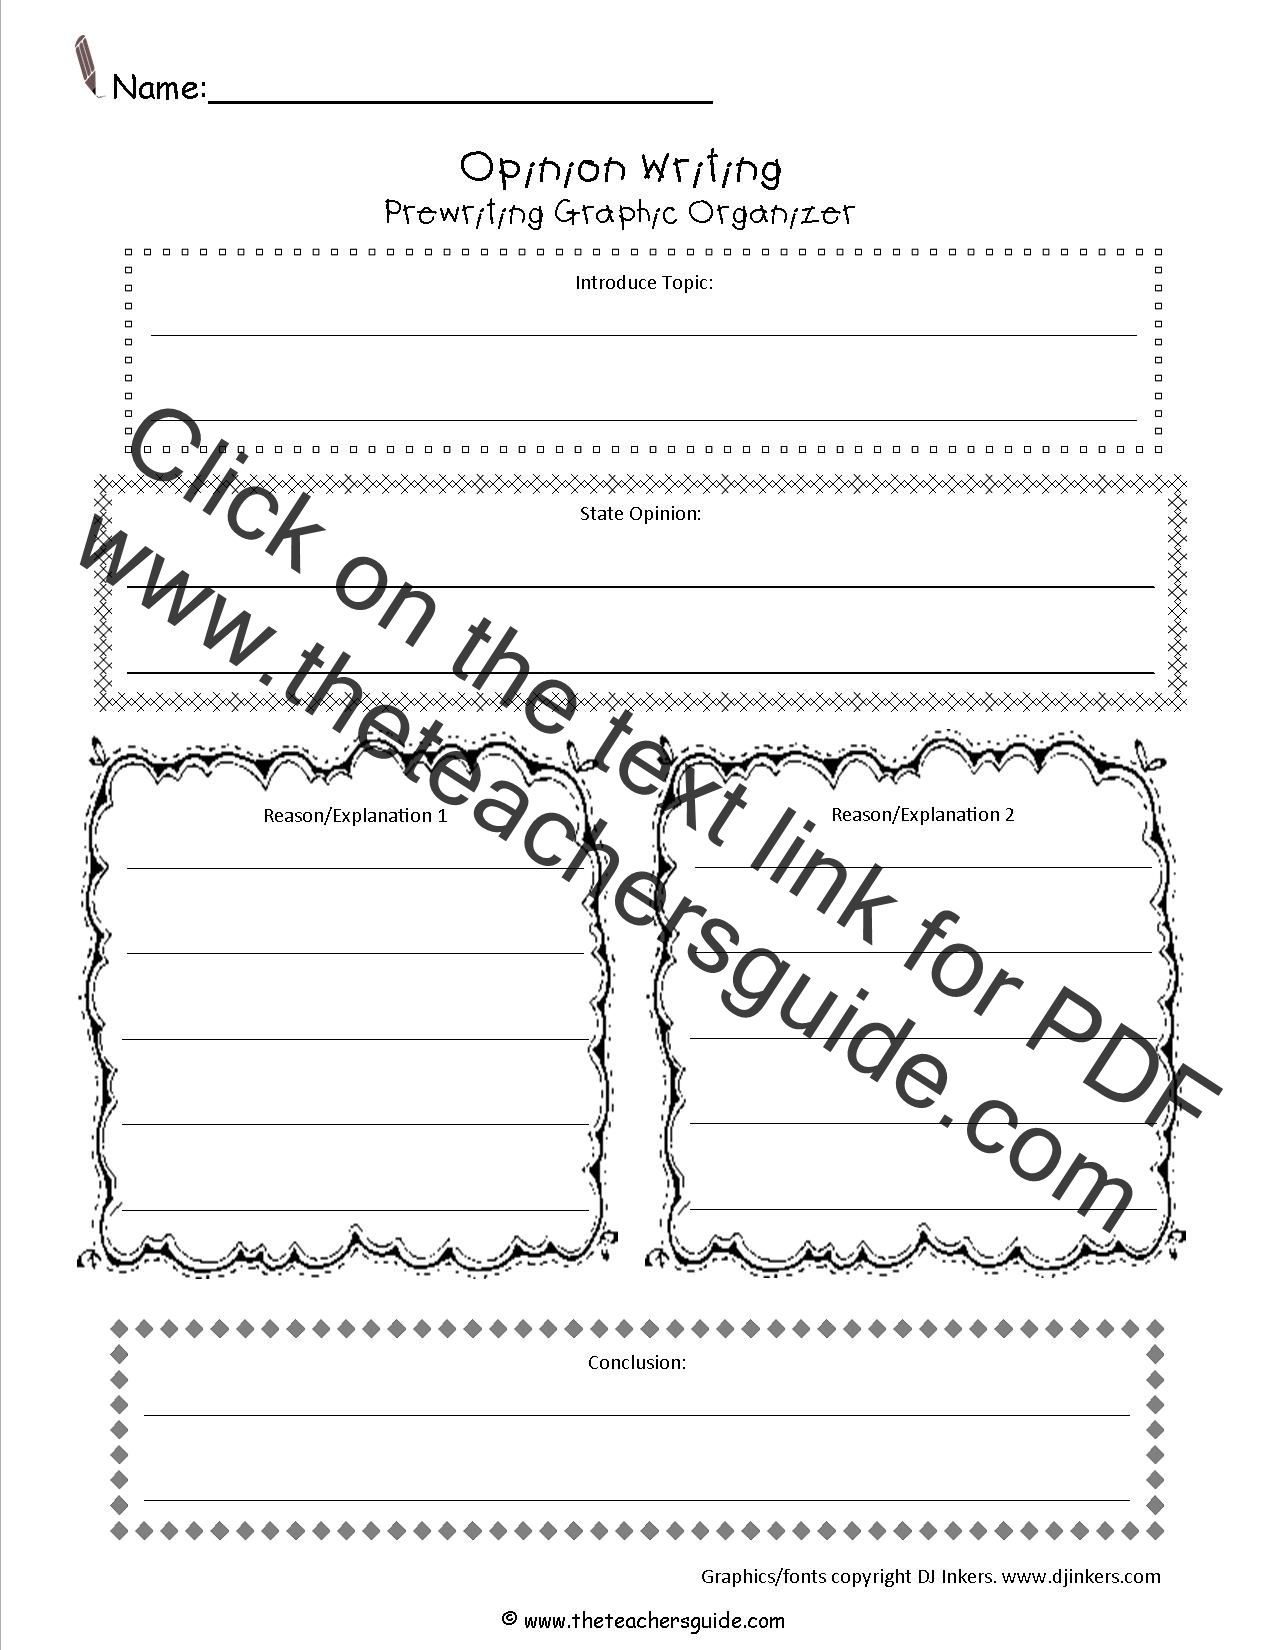 Opinion Writing Lesson Plans Themes Printouts Crafts – Opinion Writing Worksheets